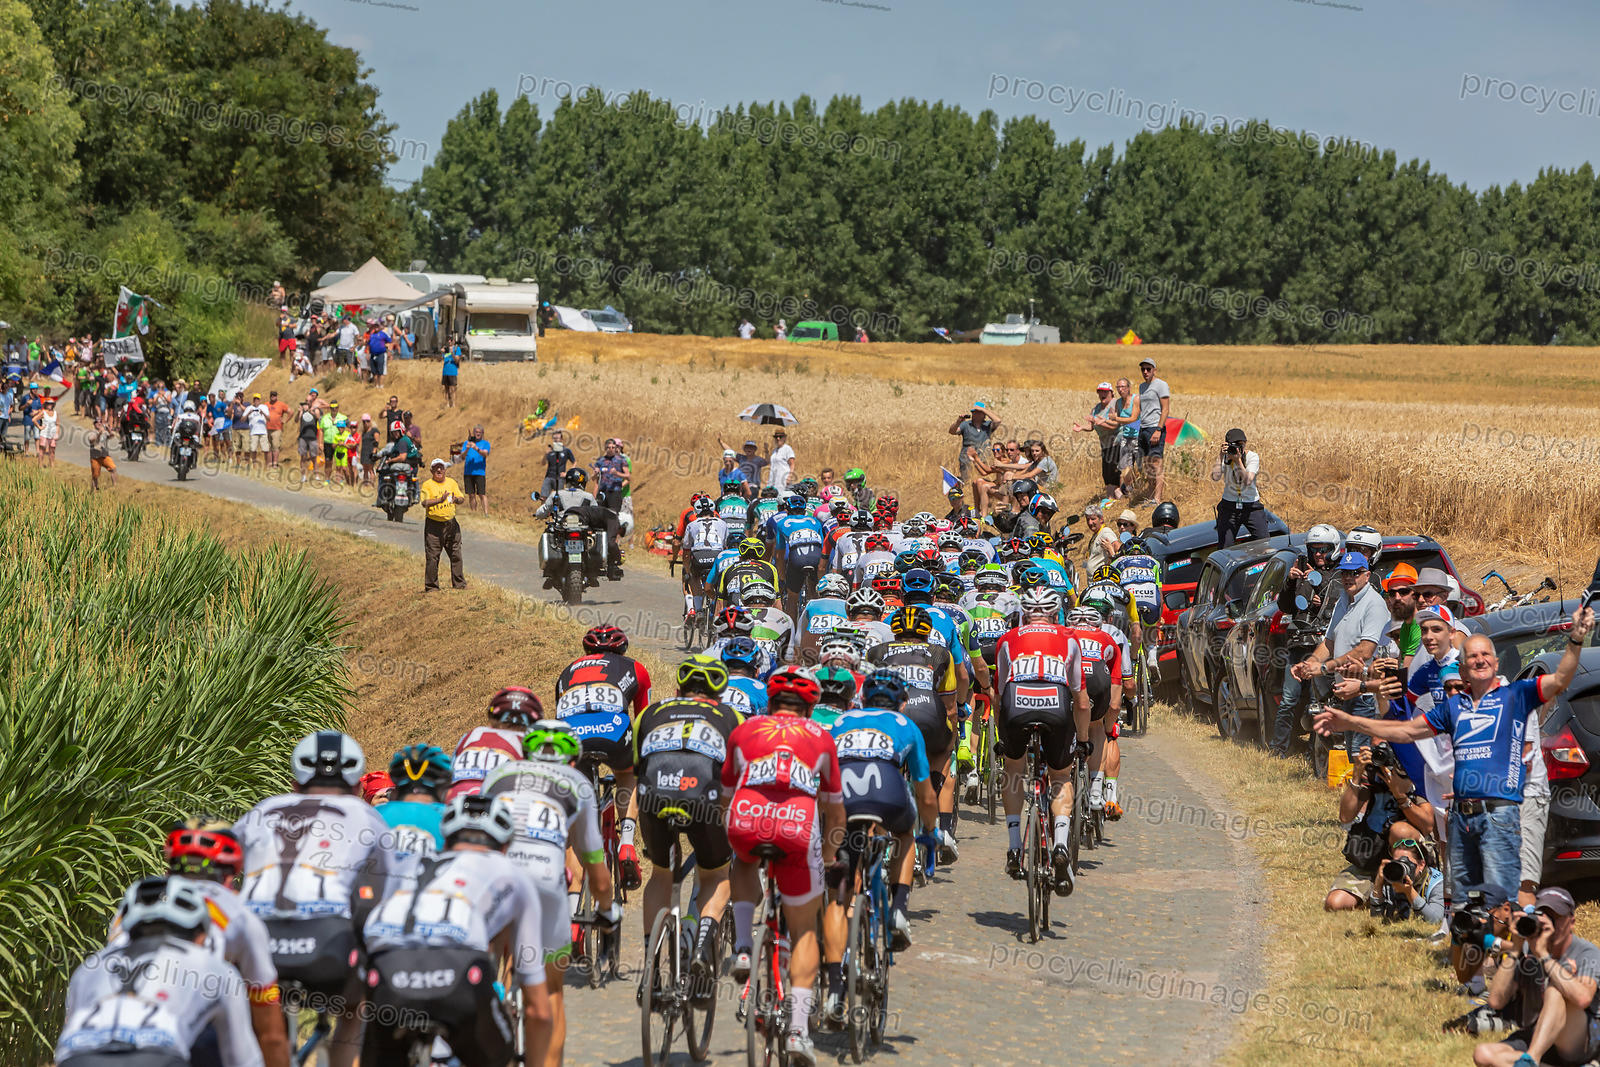 The Peloton - Tour de France 2018